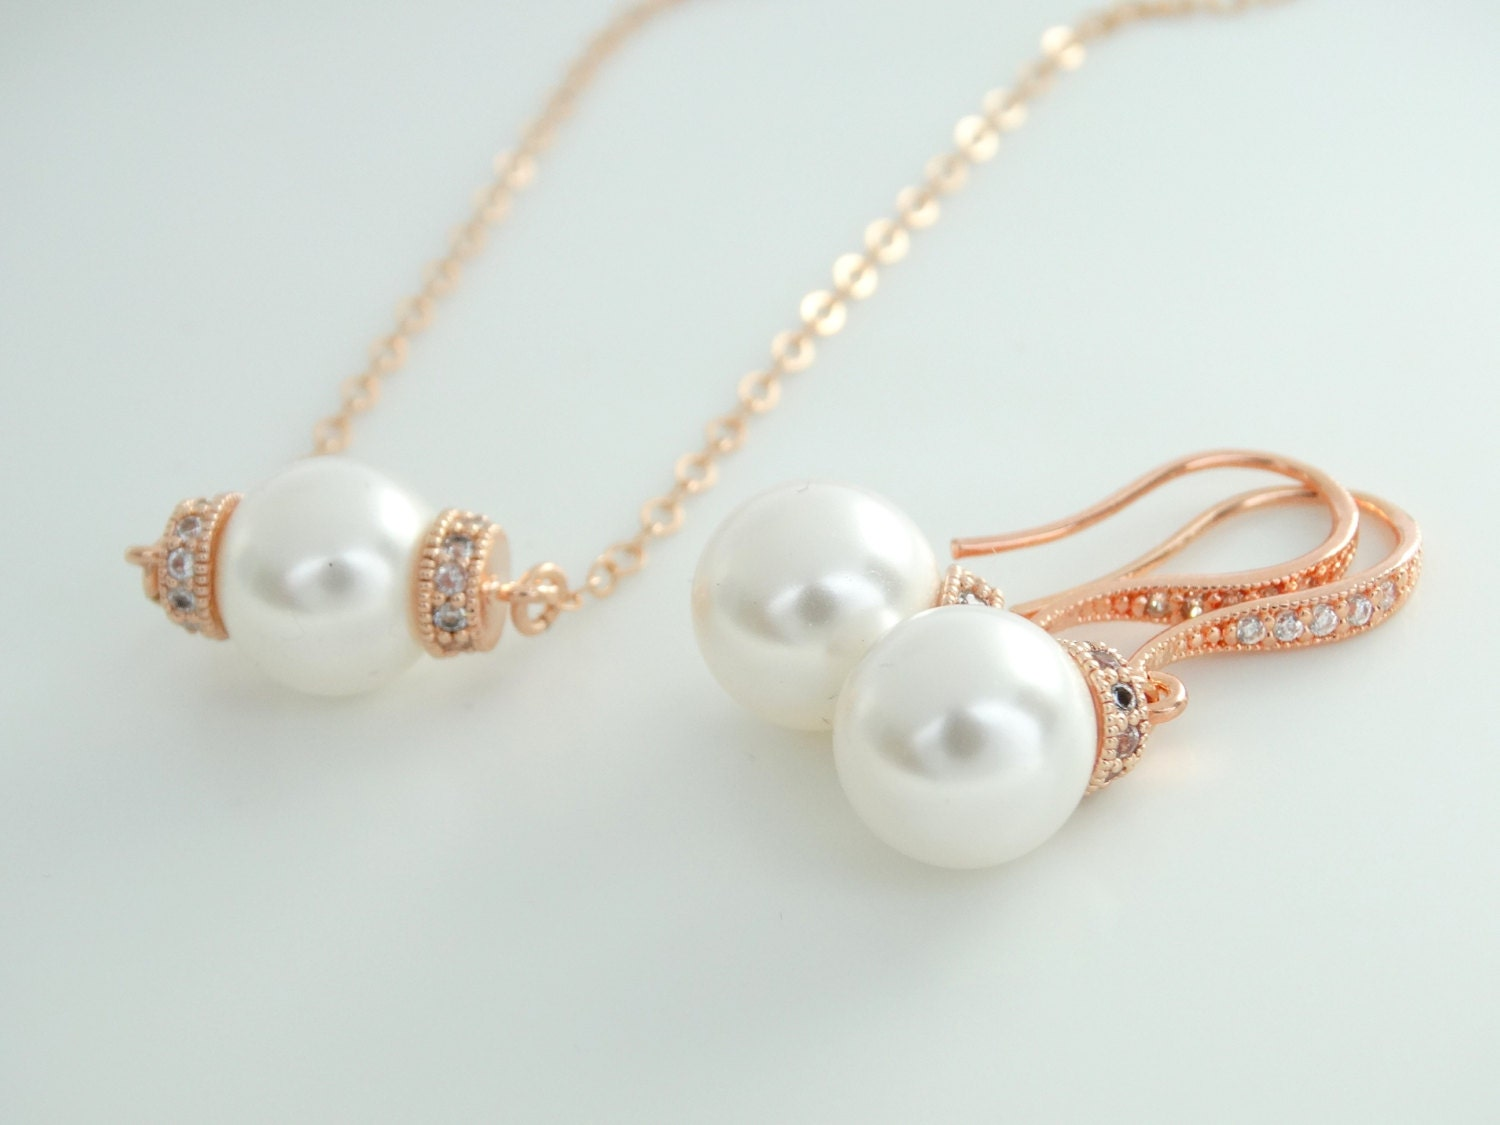 Swarovski Pearl Simple Pearl Earrings And Necklace Bridesmaid Gift Rose  Gold Earrings And Necklace Set Pink Pearl Earrings Bridal Jewelry